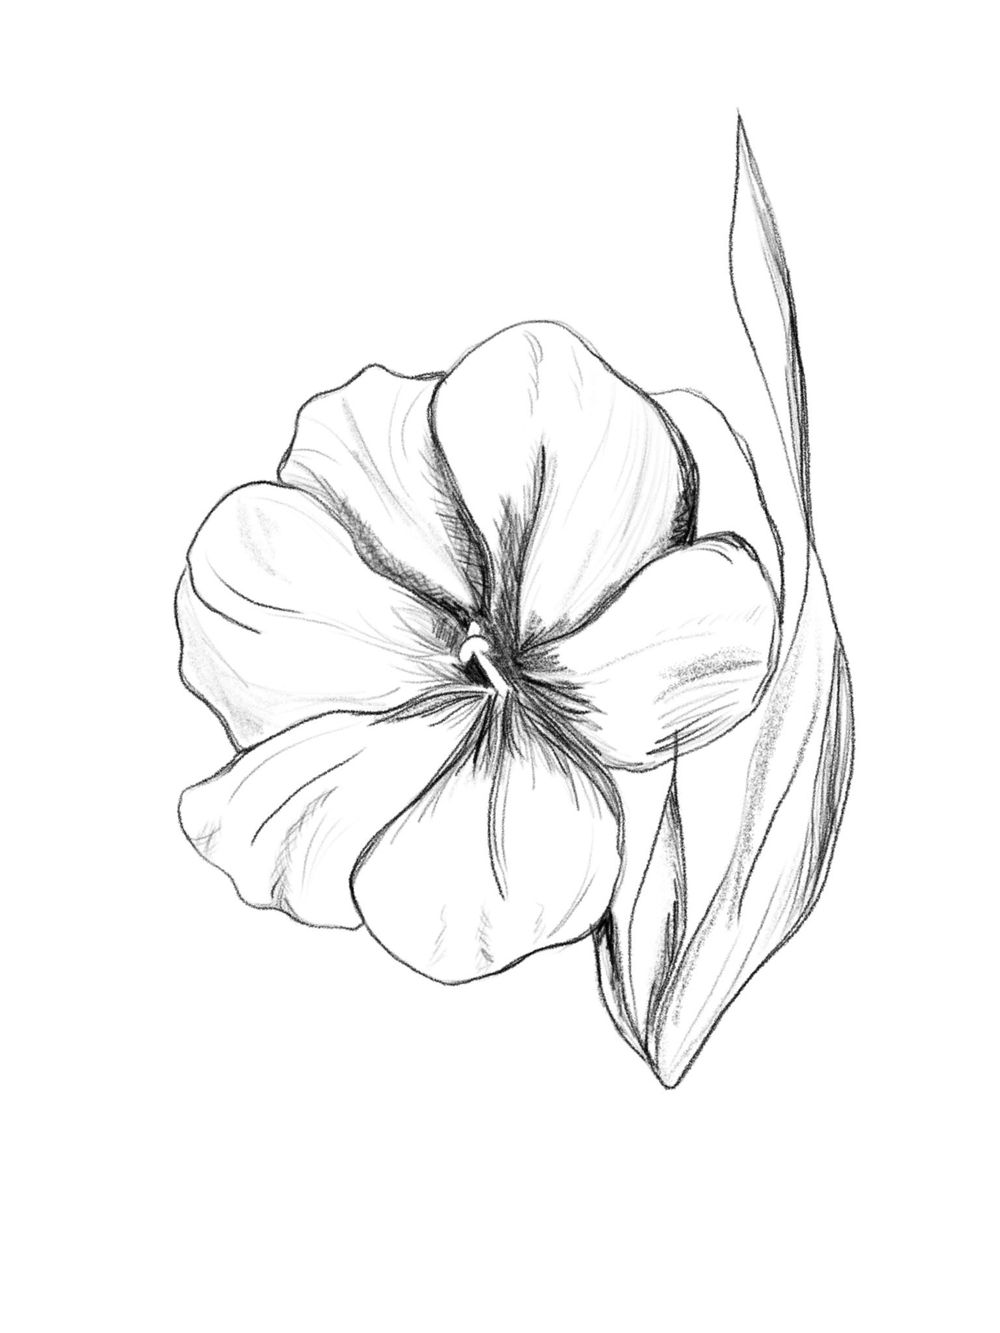 Flower Rough Sketch - image 3 - student project